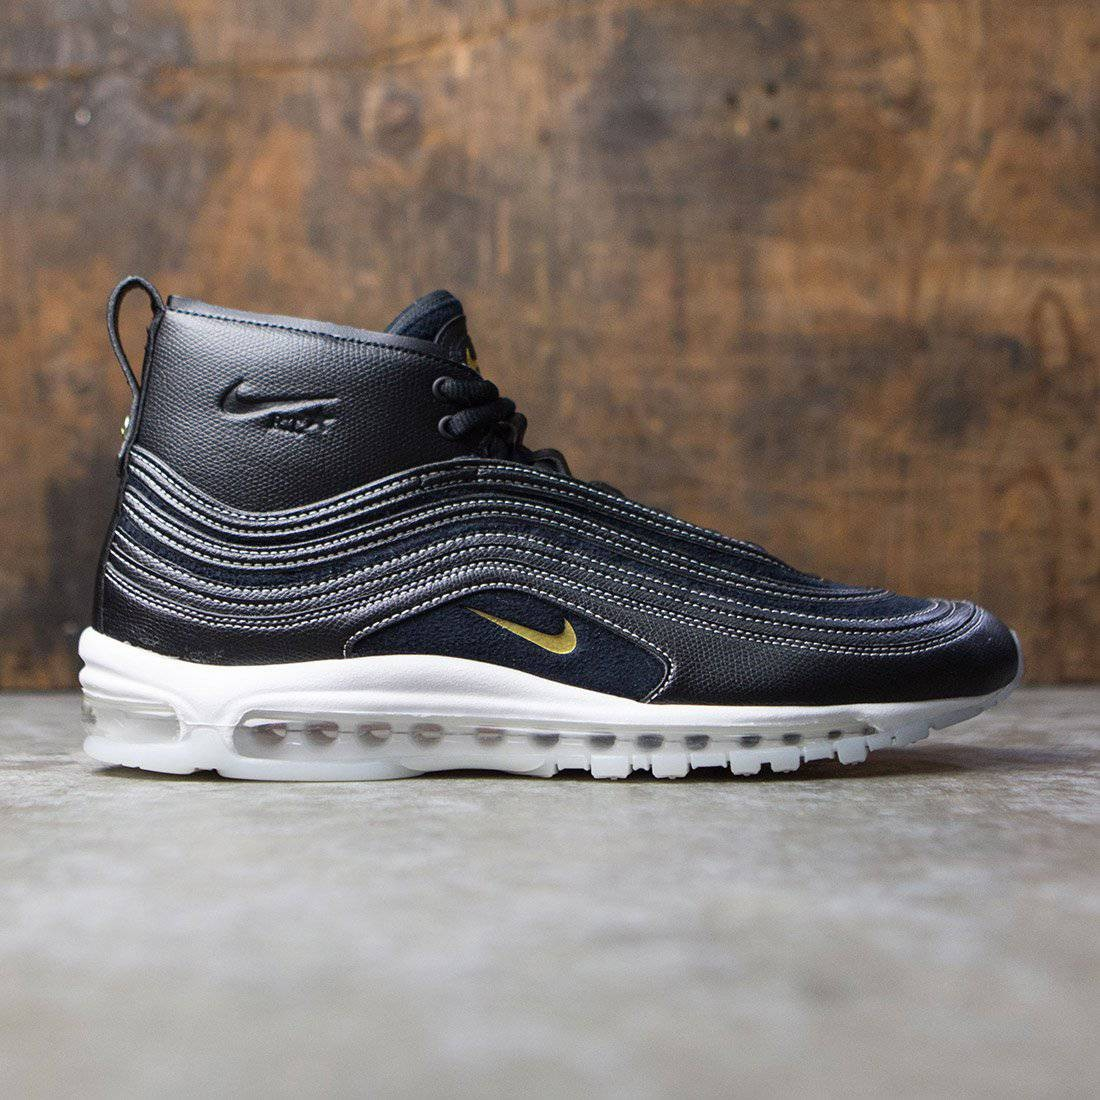 pretty nice 8f7b7 ad0b2 nikelab riccardo tisci men air max 97 mid black metallic gold anthracite  white